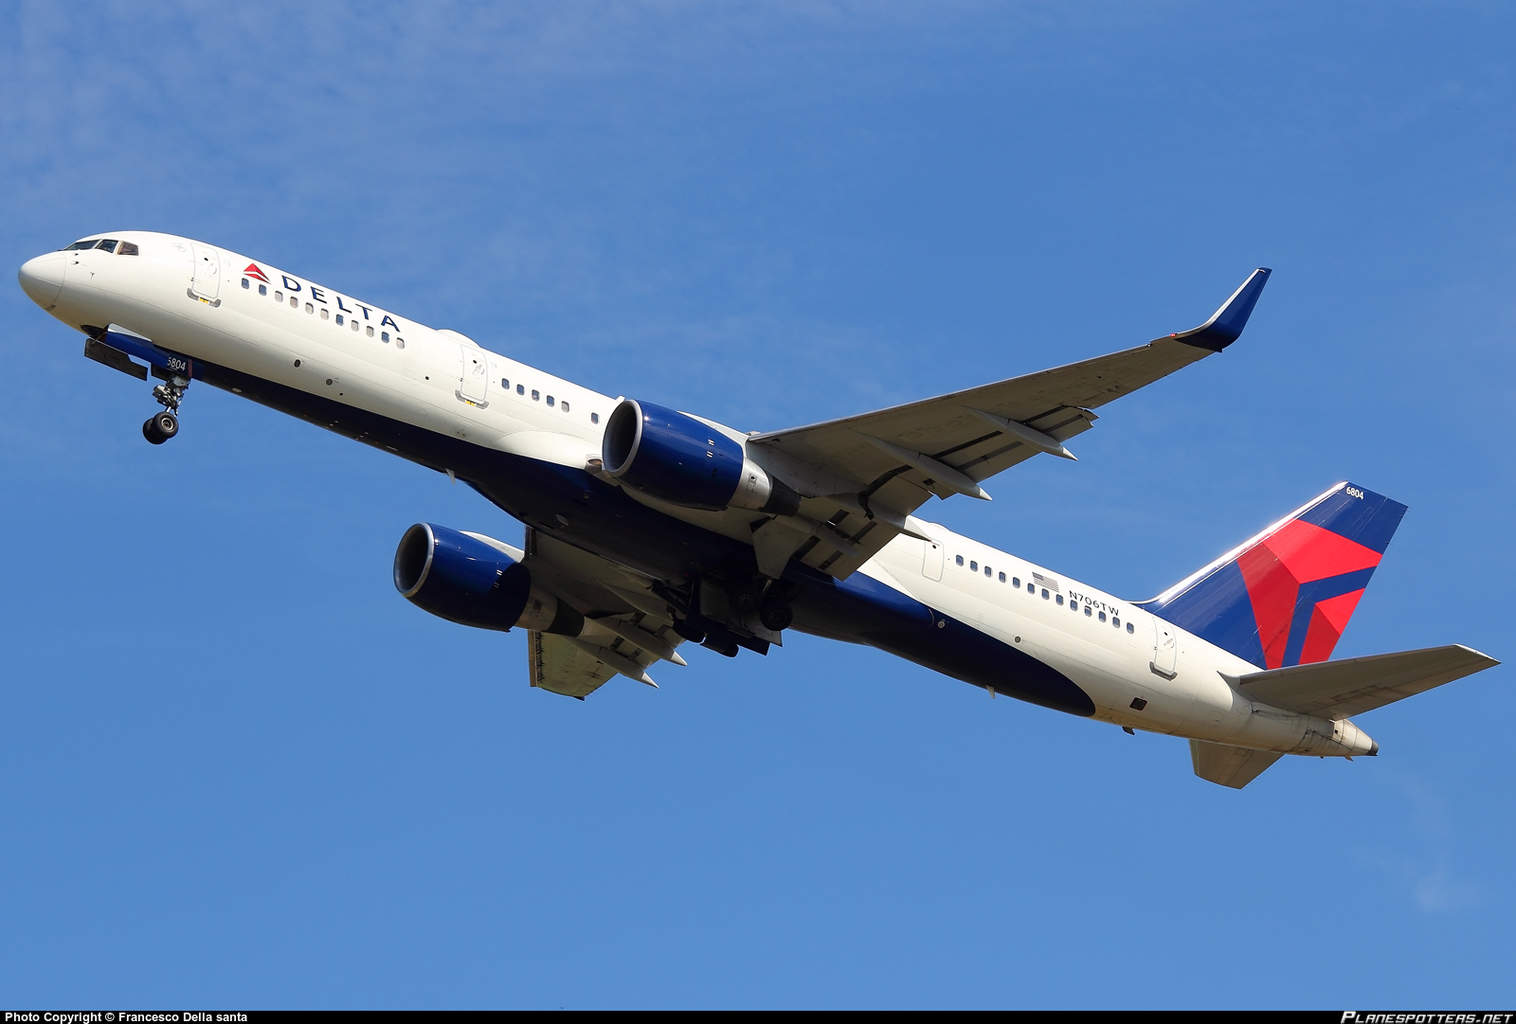 Delta Air Lines Boeing 757-2Q8(WL) has engine fire warning